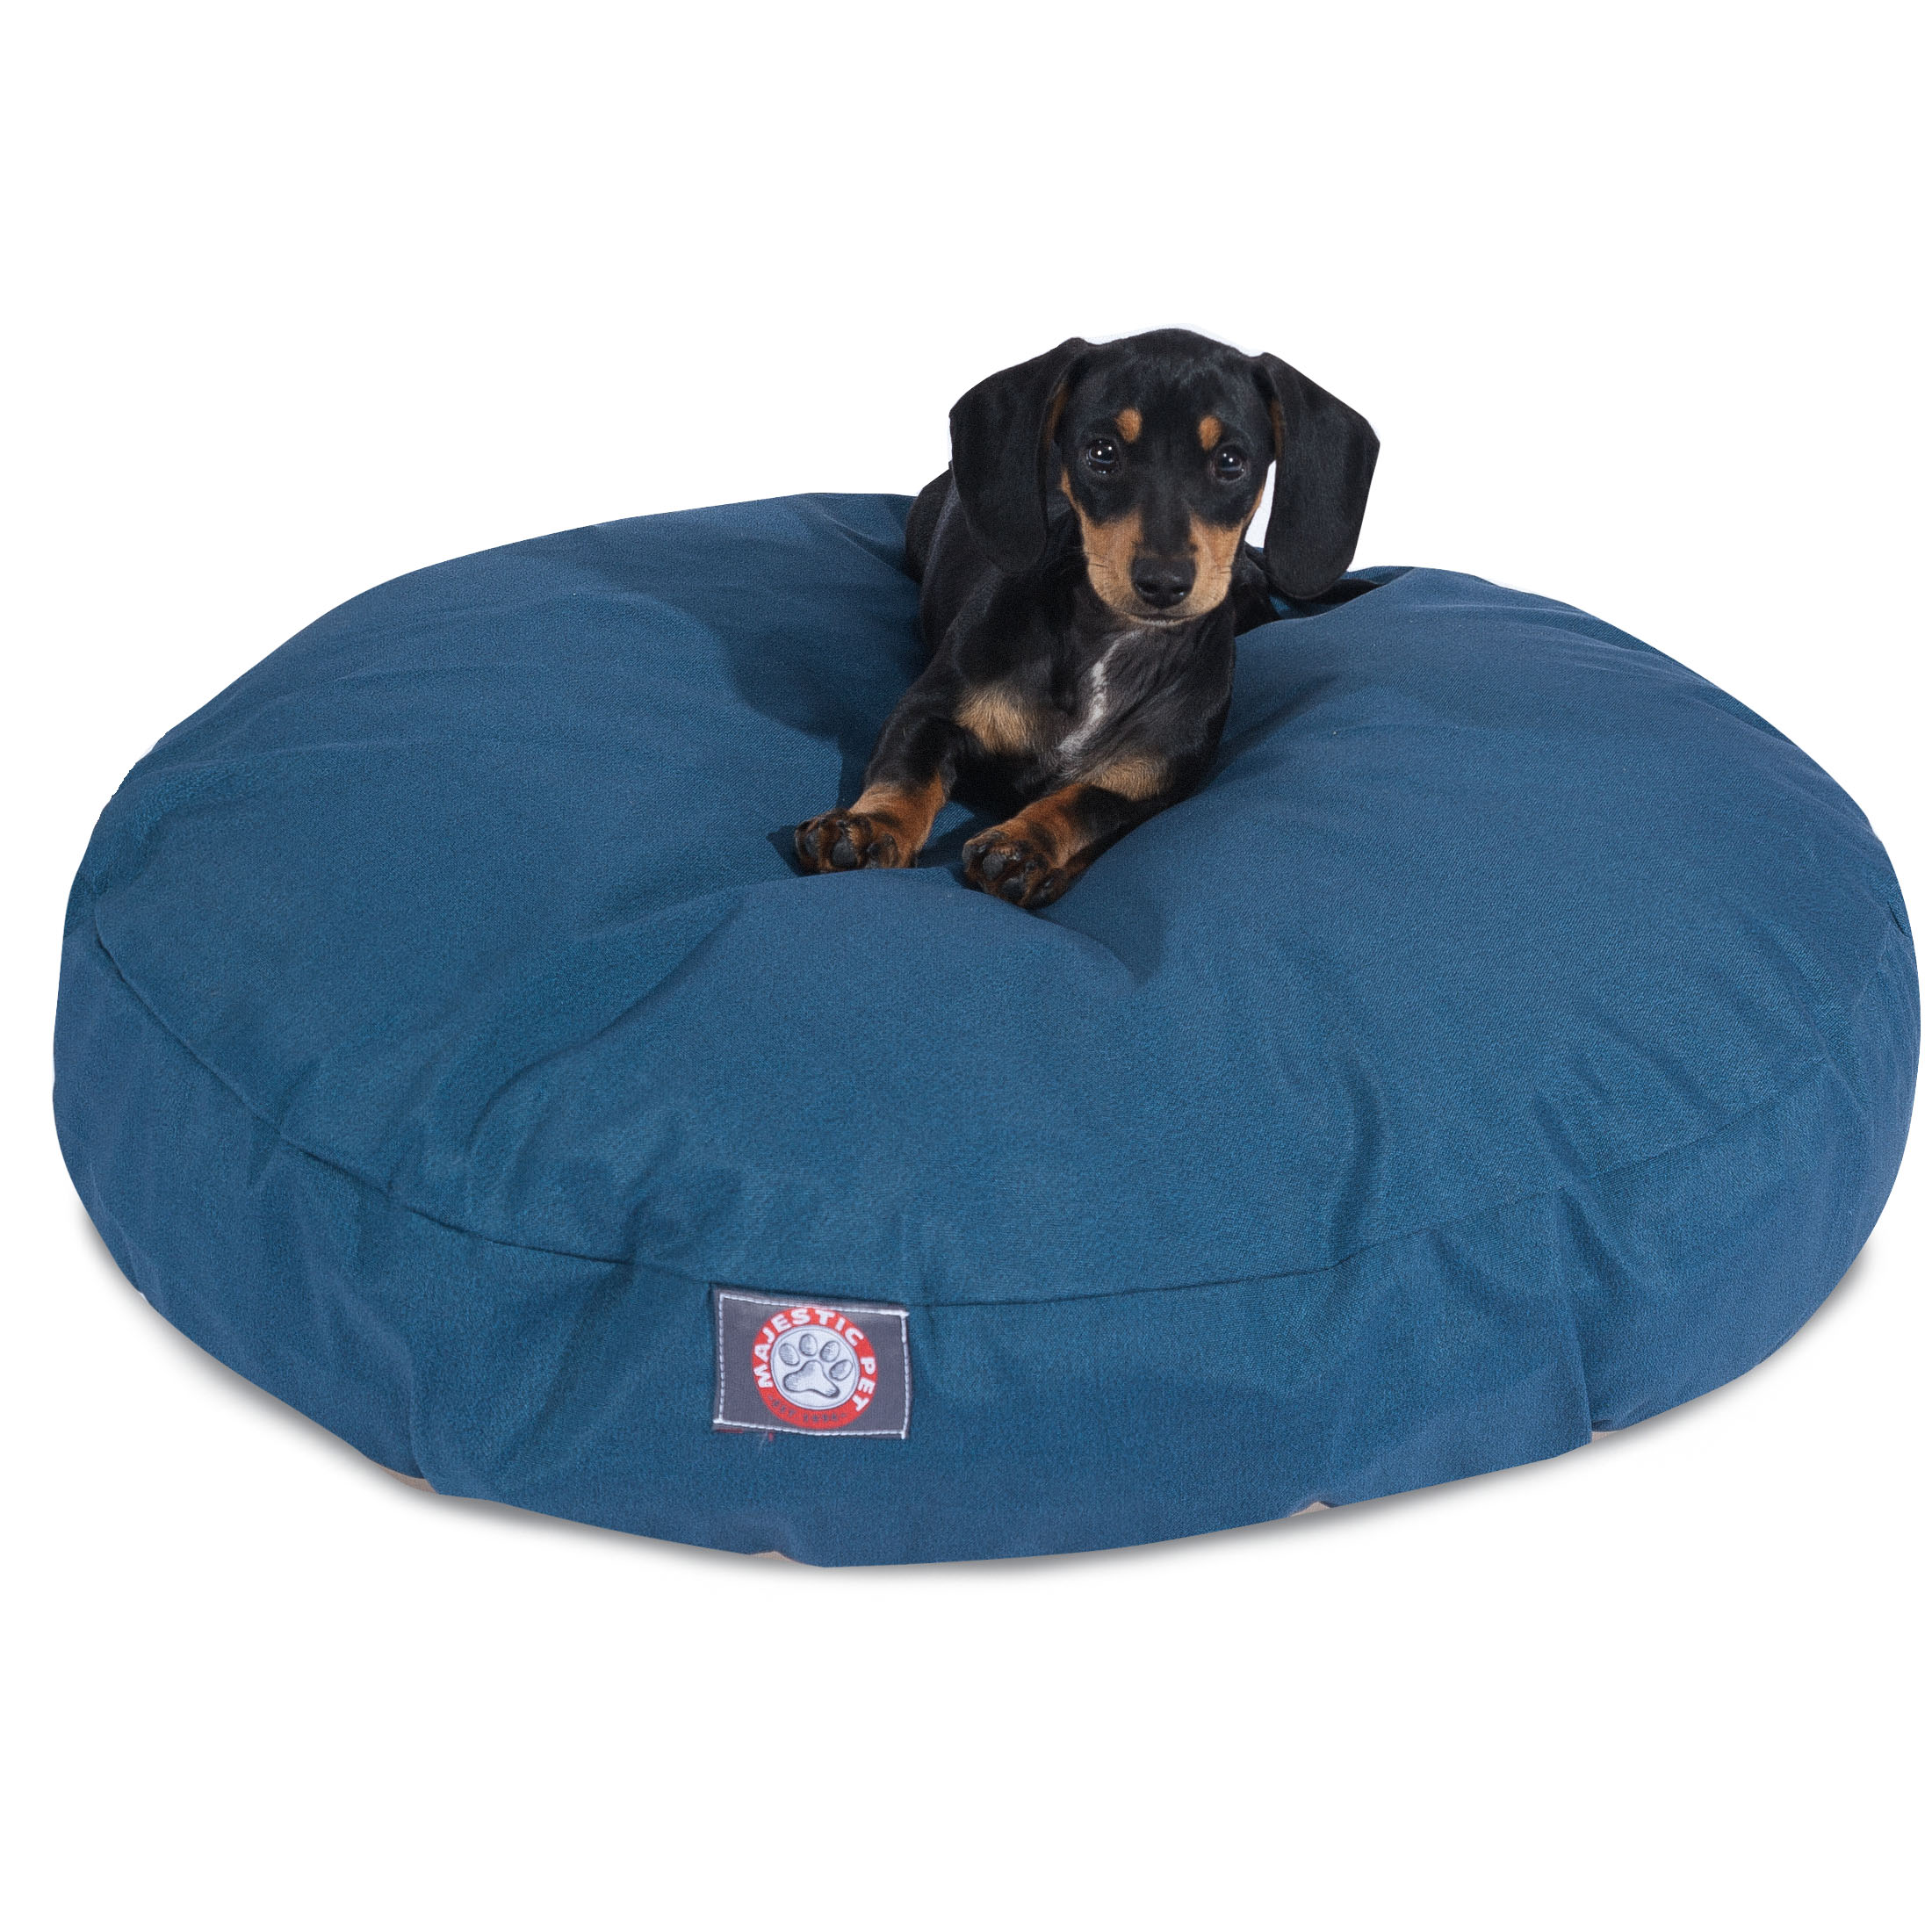 Majestic Pet Solid Round Dog Bed Treated Polyester Removable Cover Machine Washable